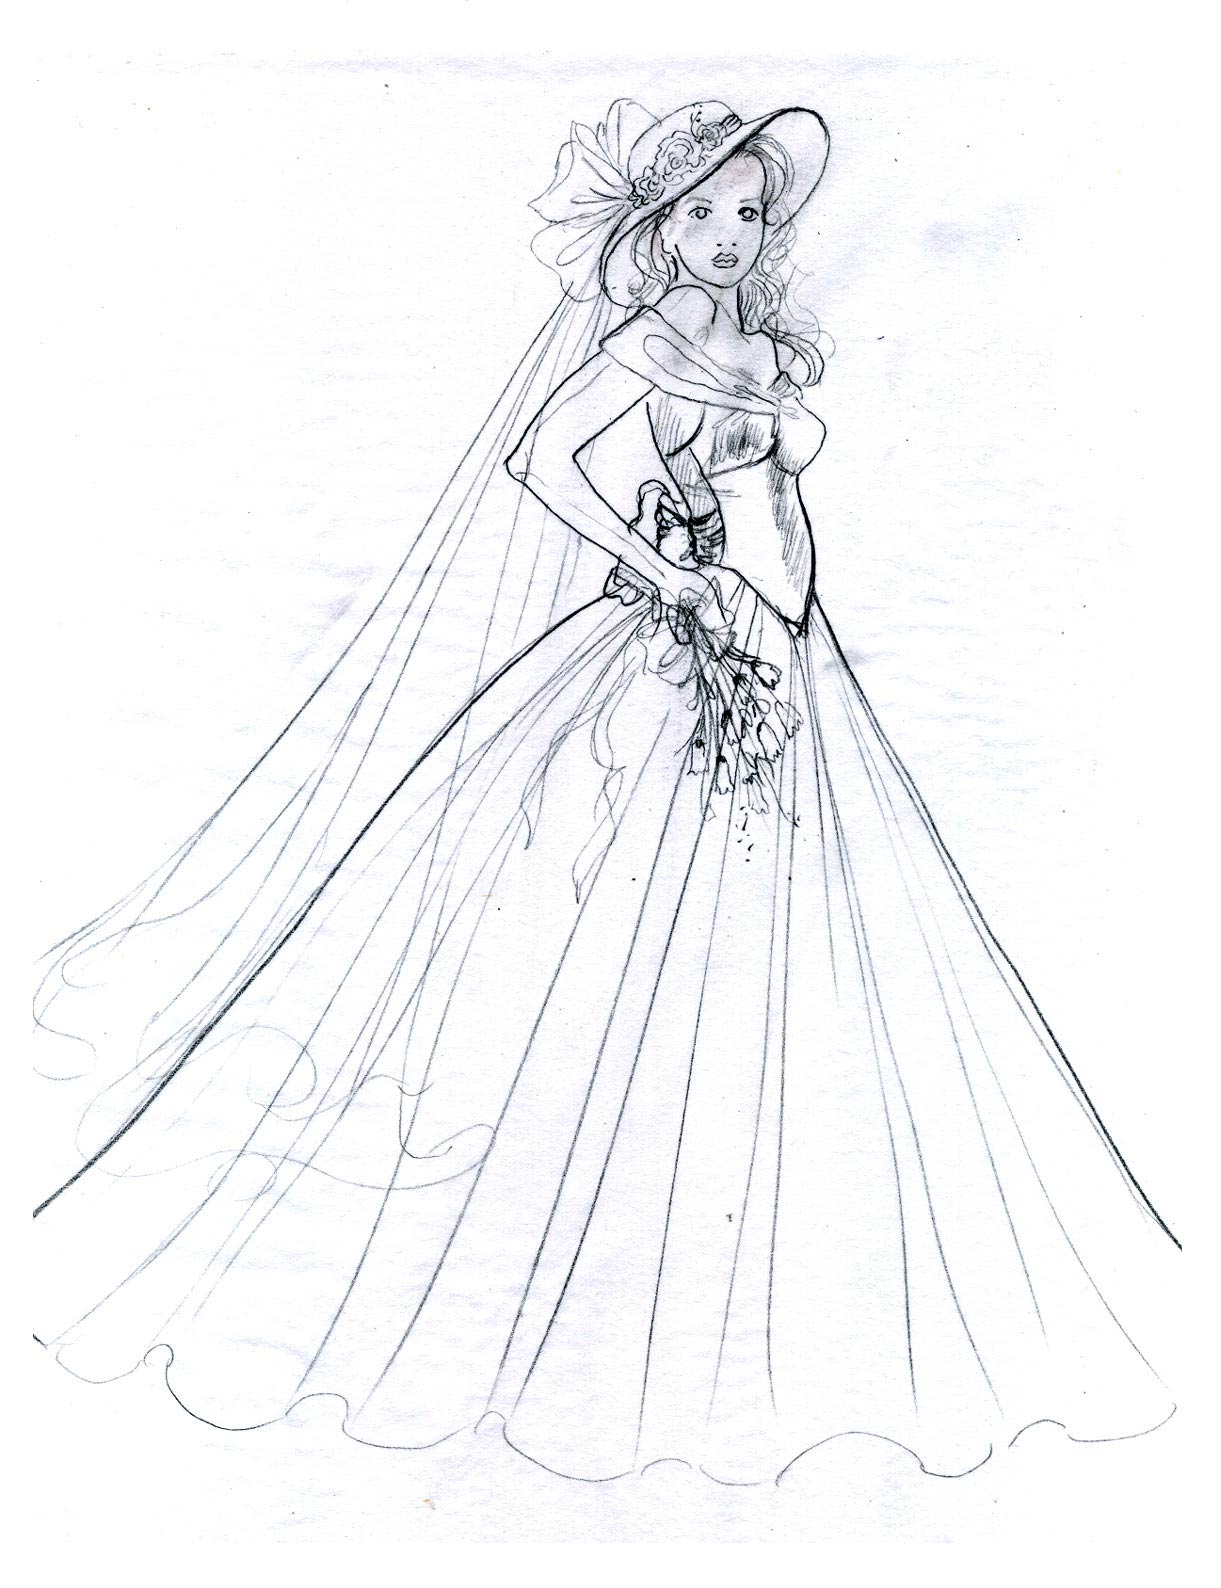 Vintage Bride 2 Sketch By Cindy McClure